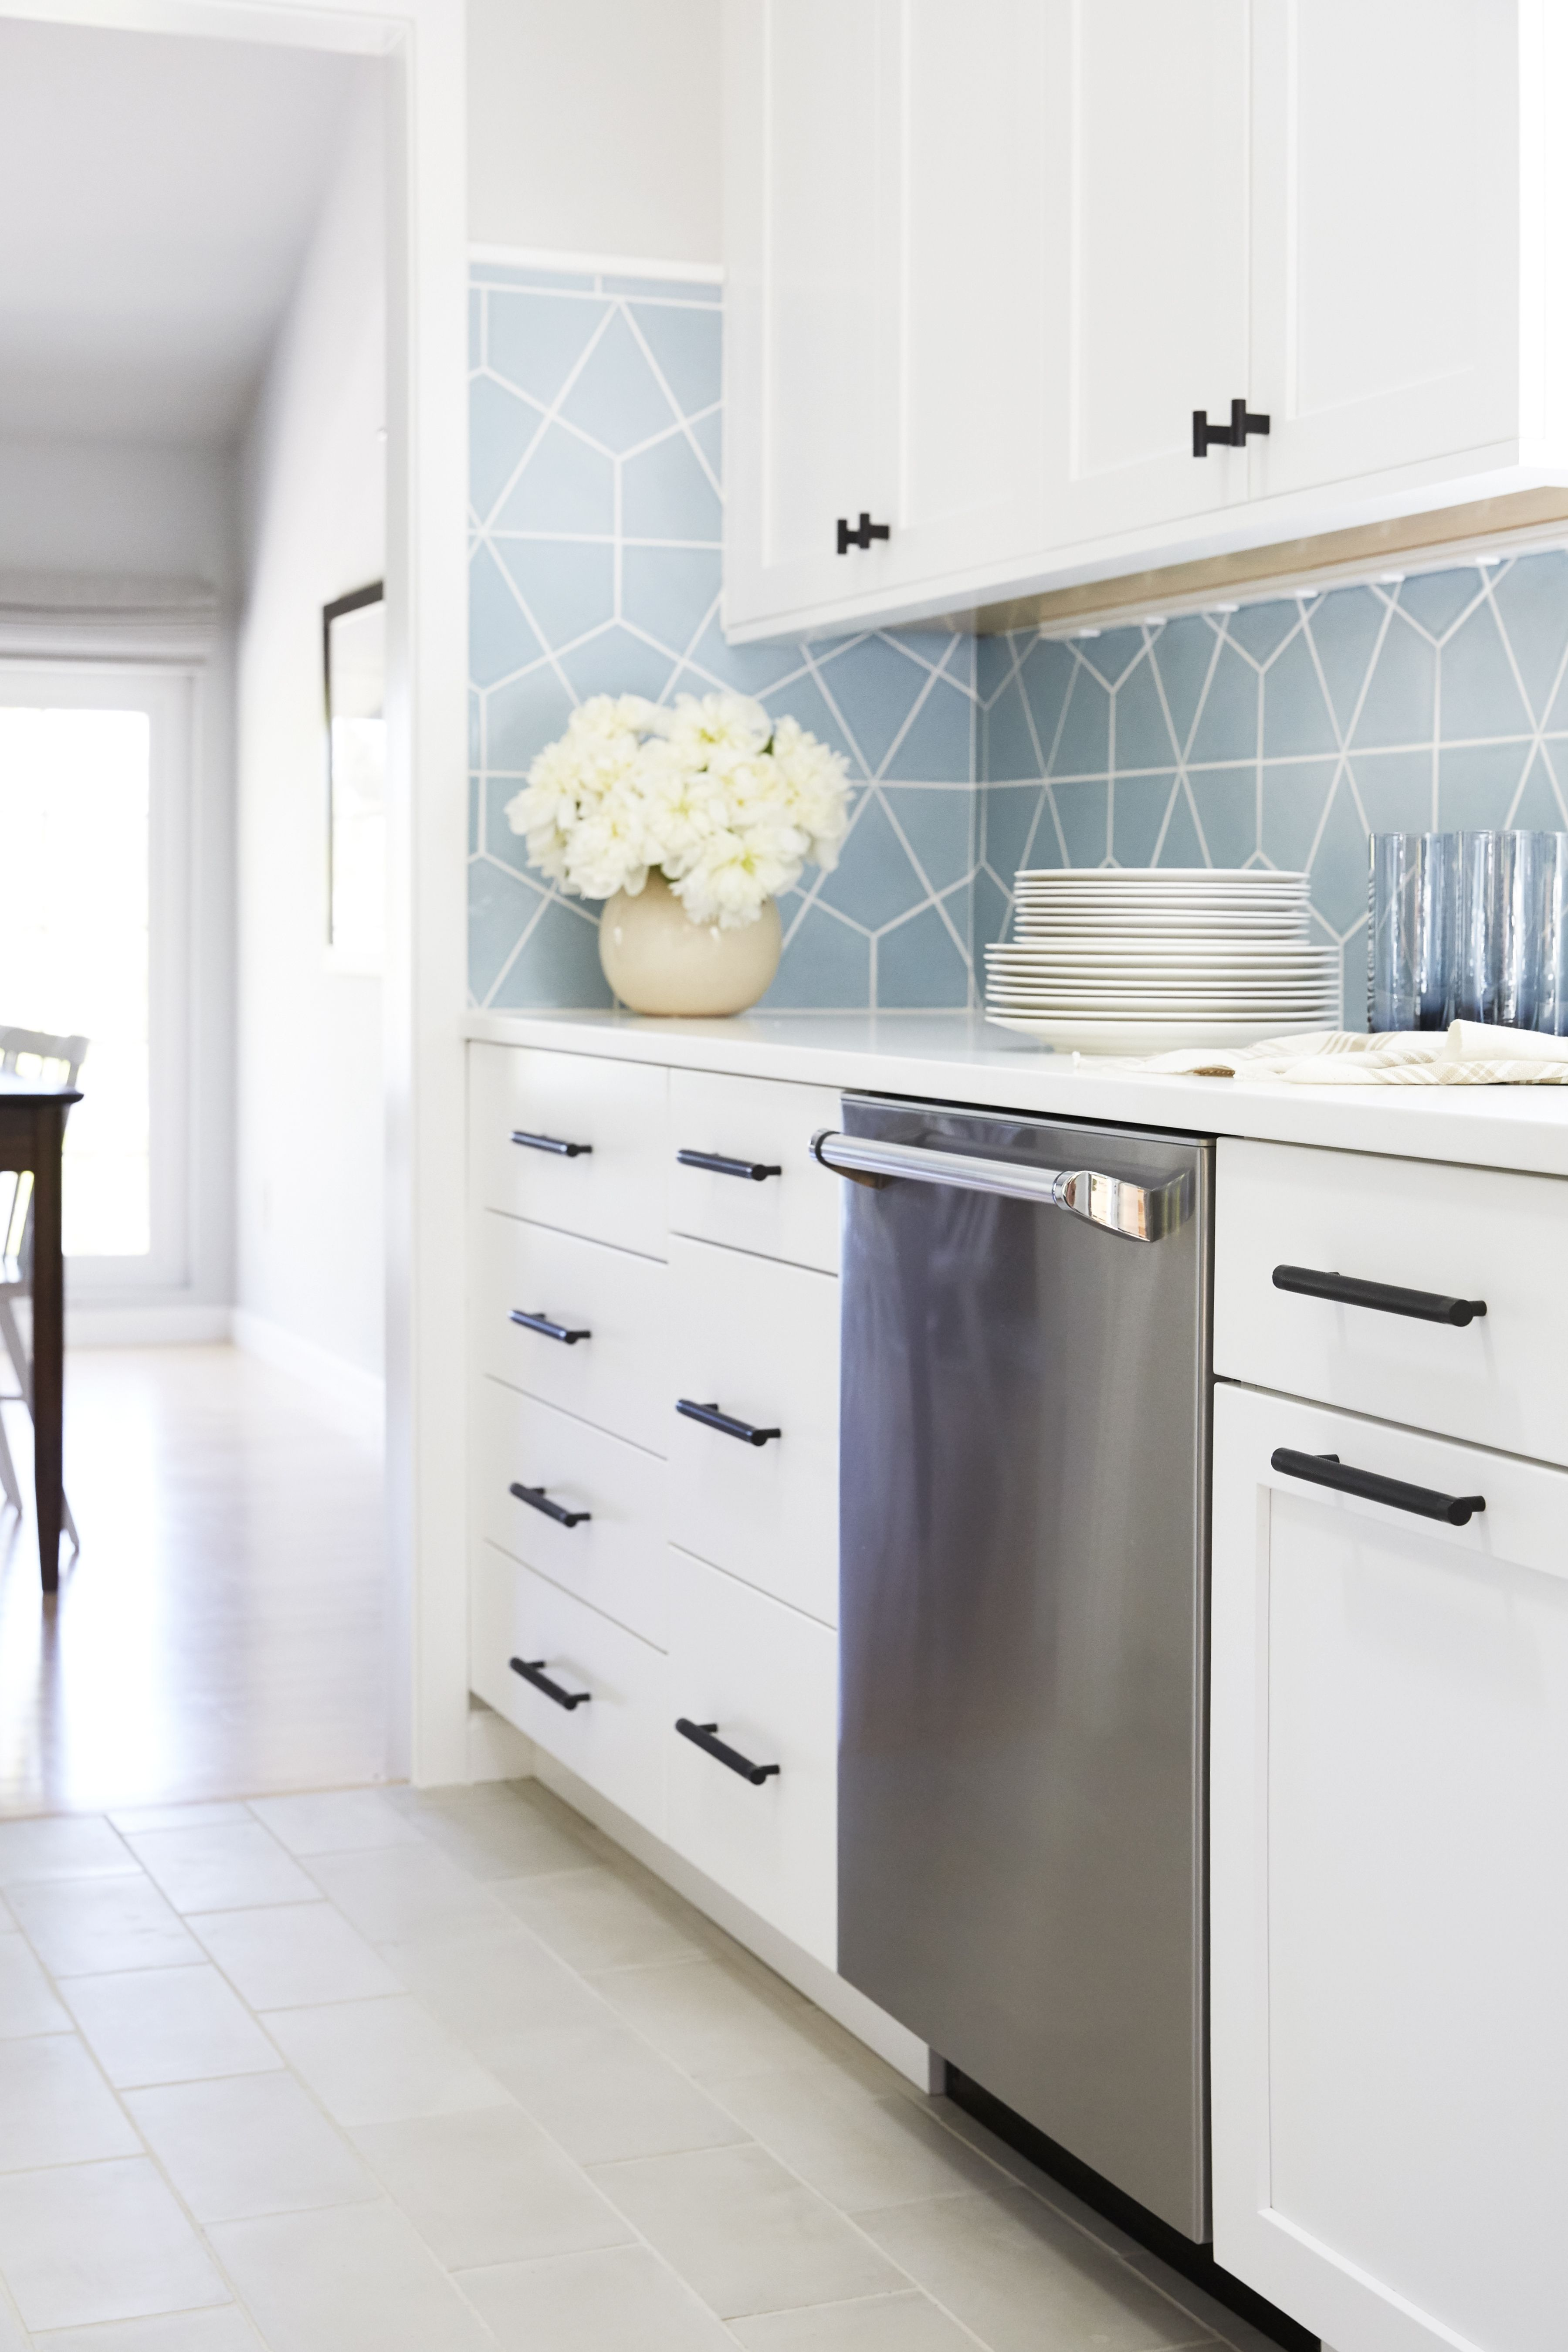 Hexite In Crater Lake Kitchen Projects Kitchen Tiles Kitchen Remodel